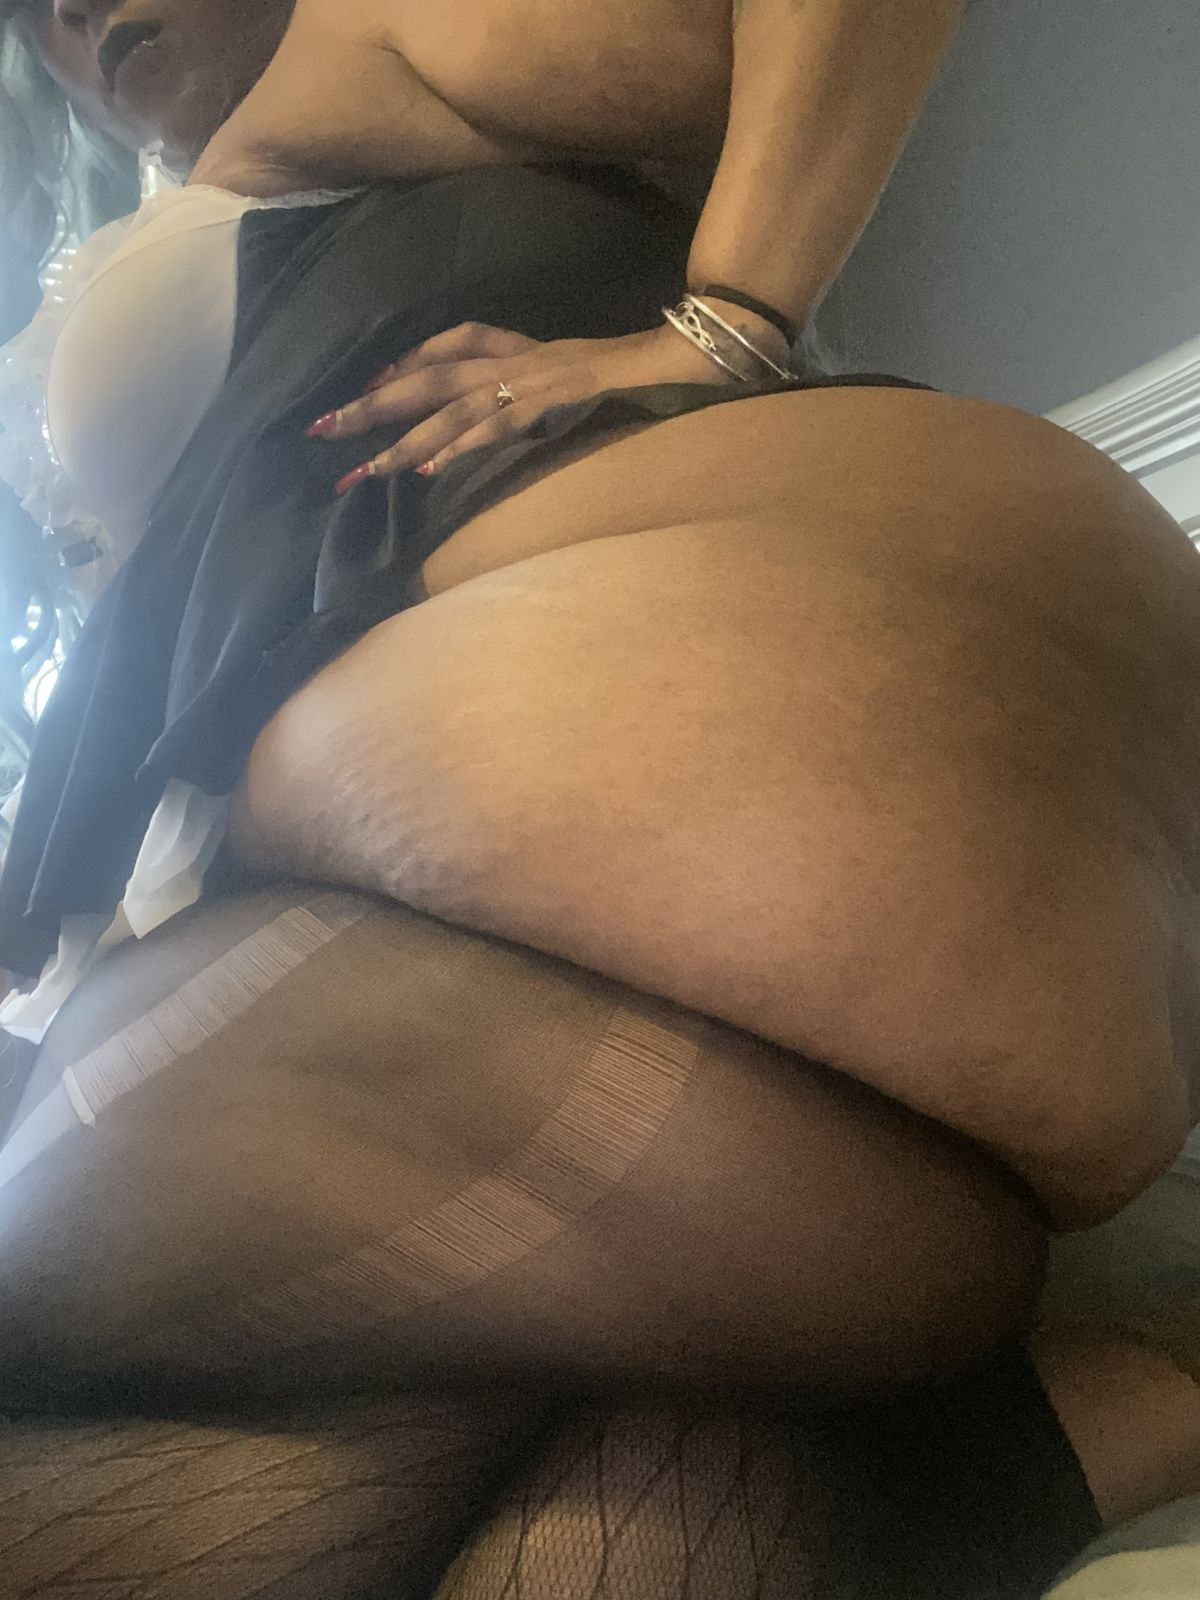 Download Thickaliciousent onlyfans leaks onlyfans leaked